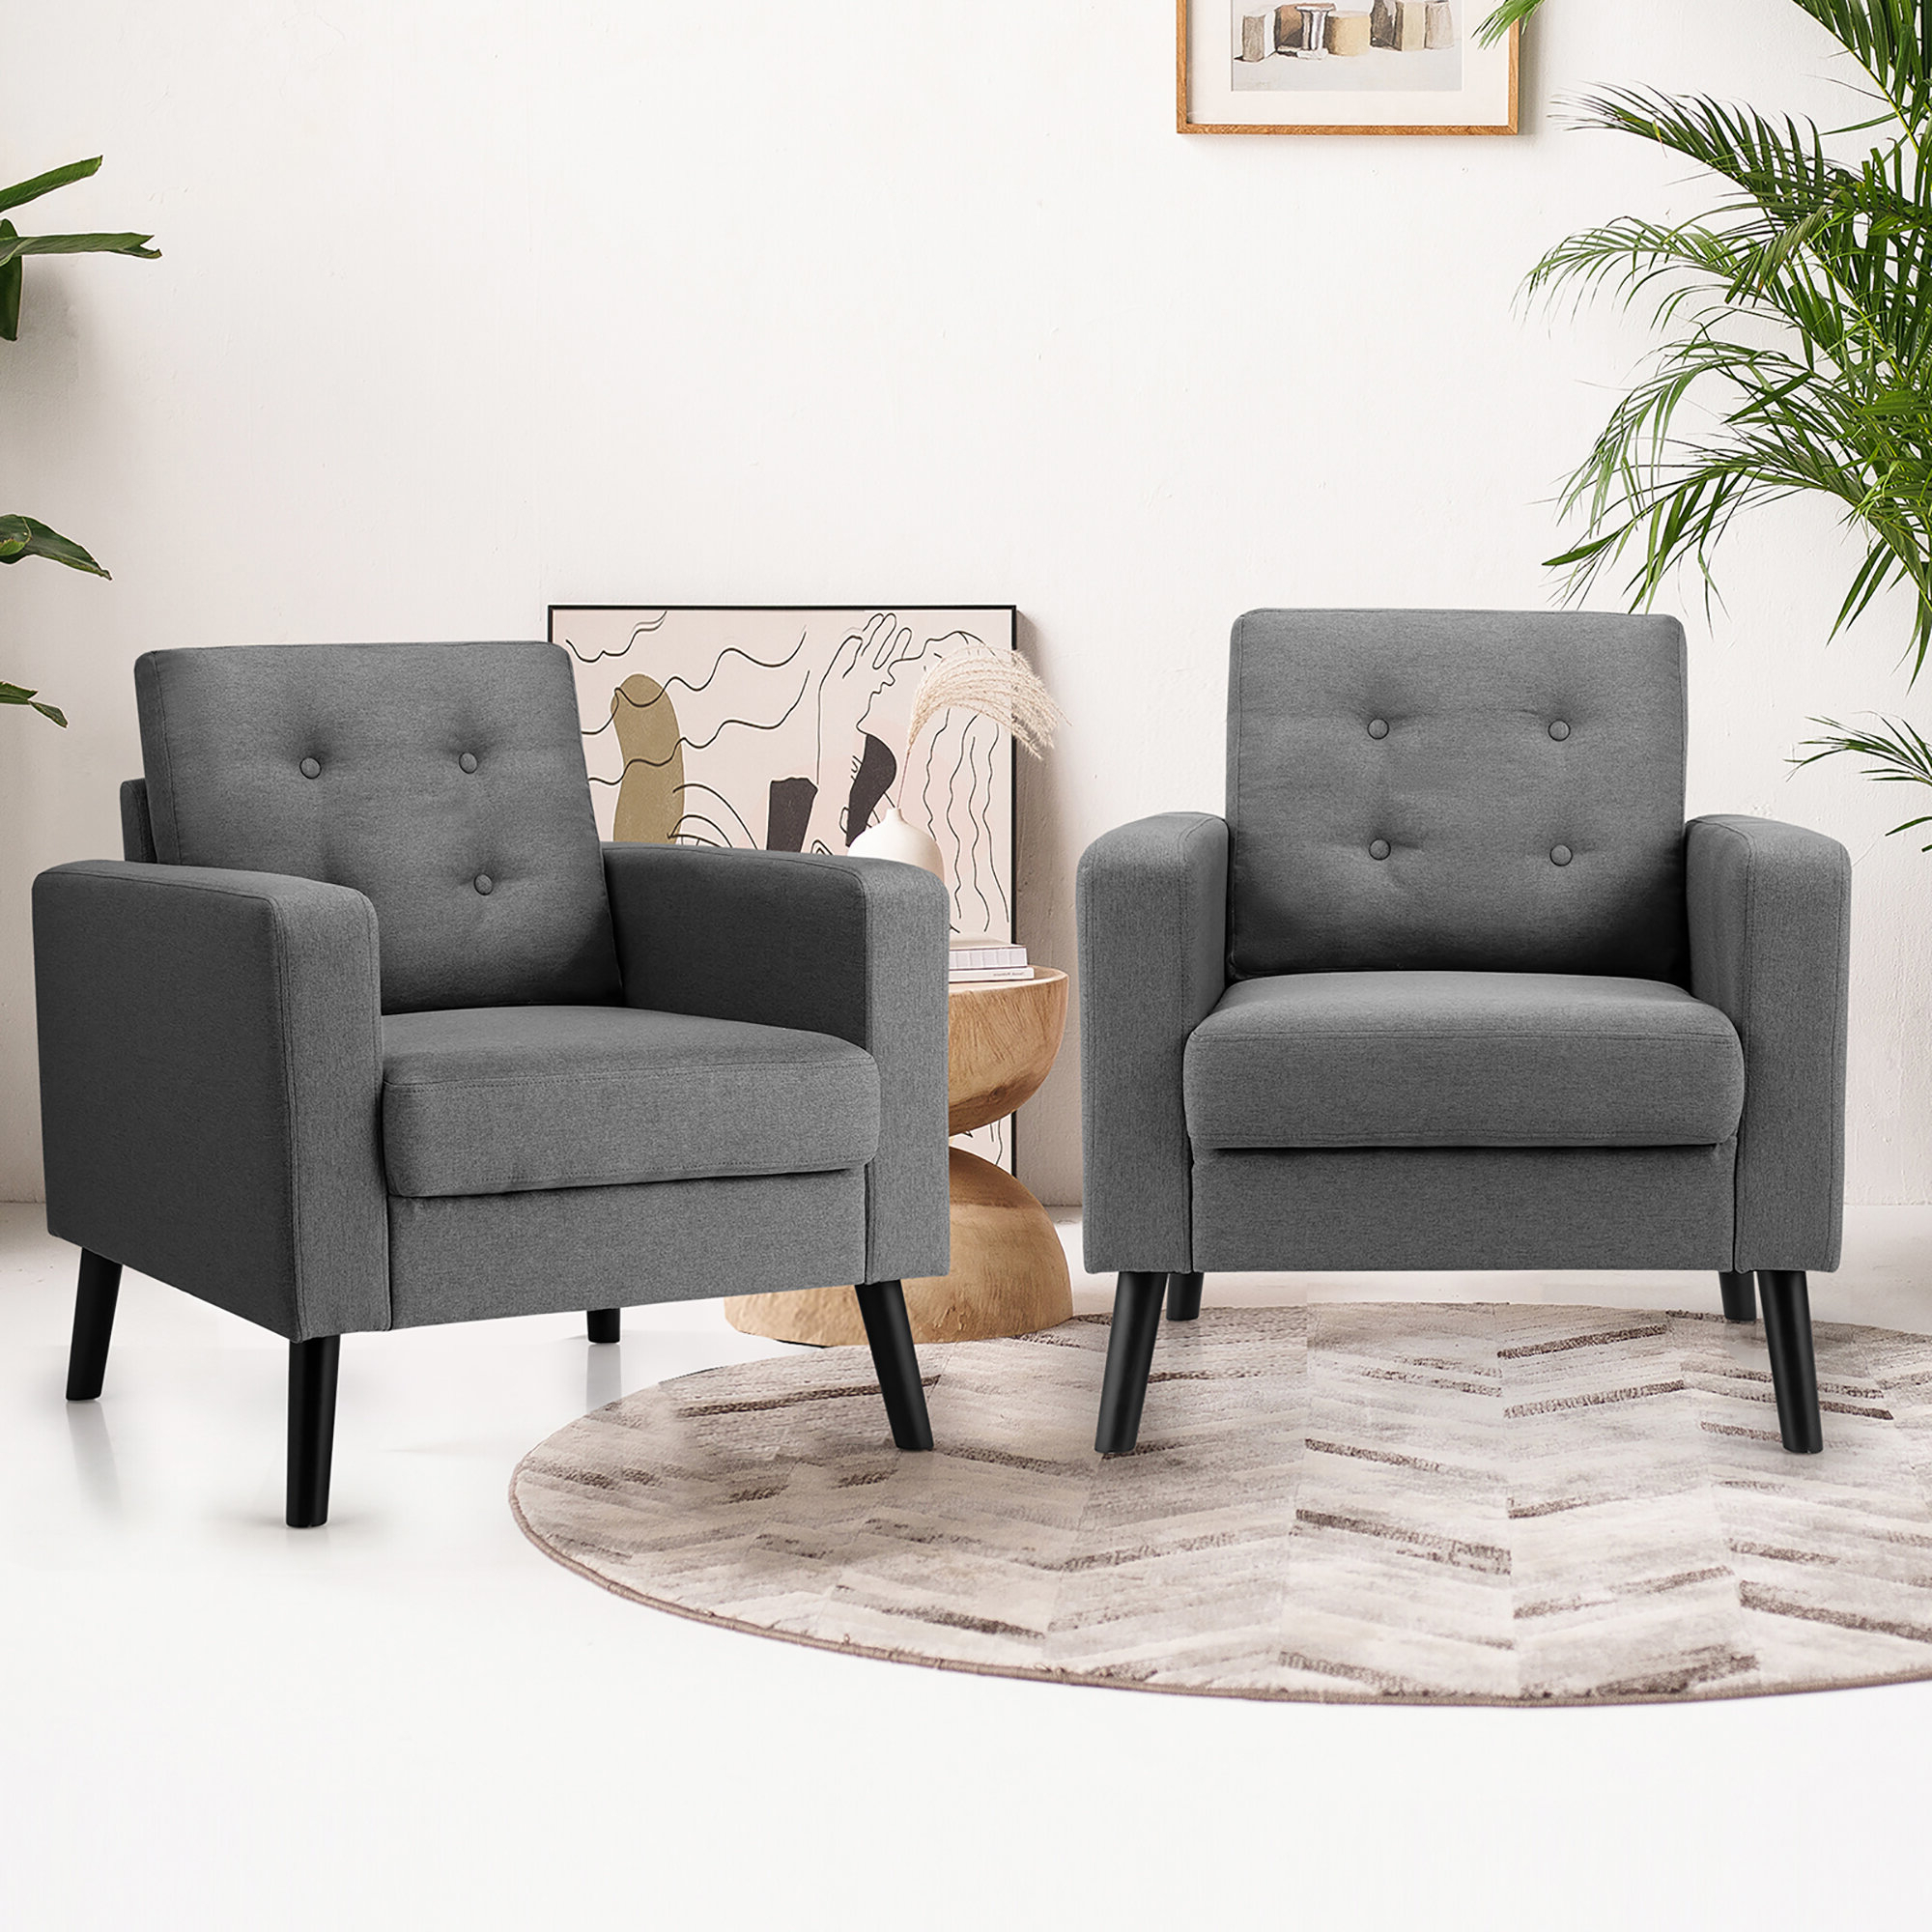 Most Current Arm Modern & Contemporary Accent Chairs You'll Love In 2021 Throughout Ragsdale Armchairs (View 14 of 20)